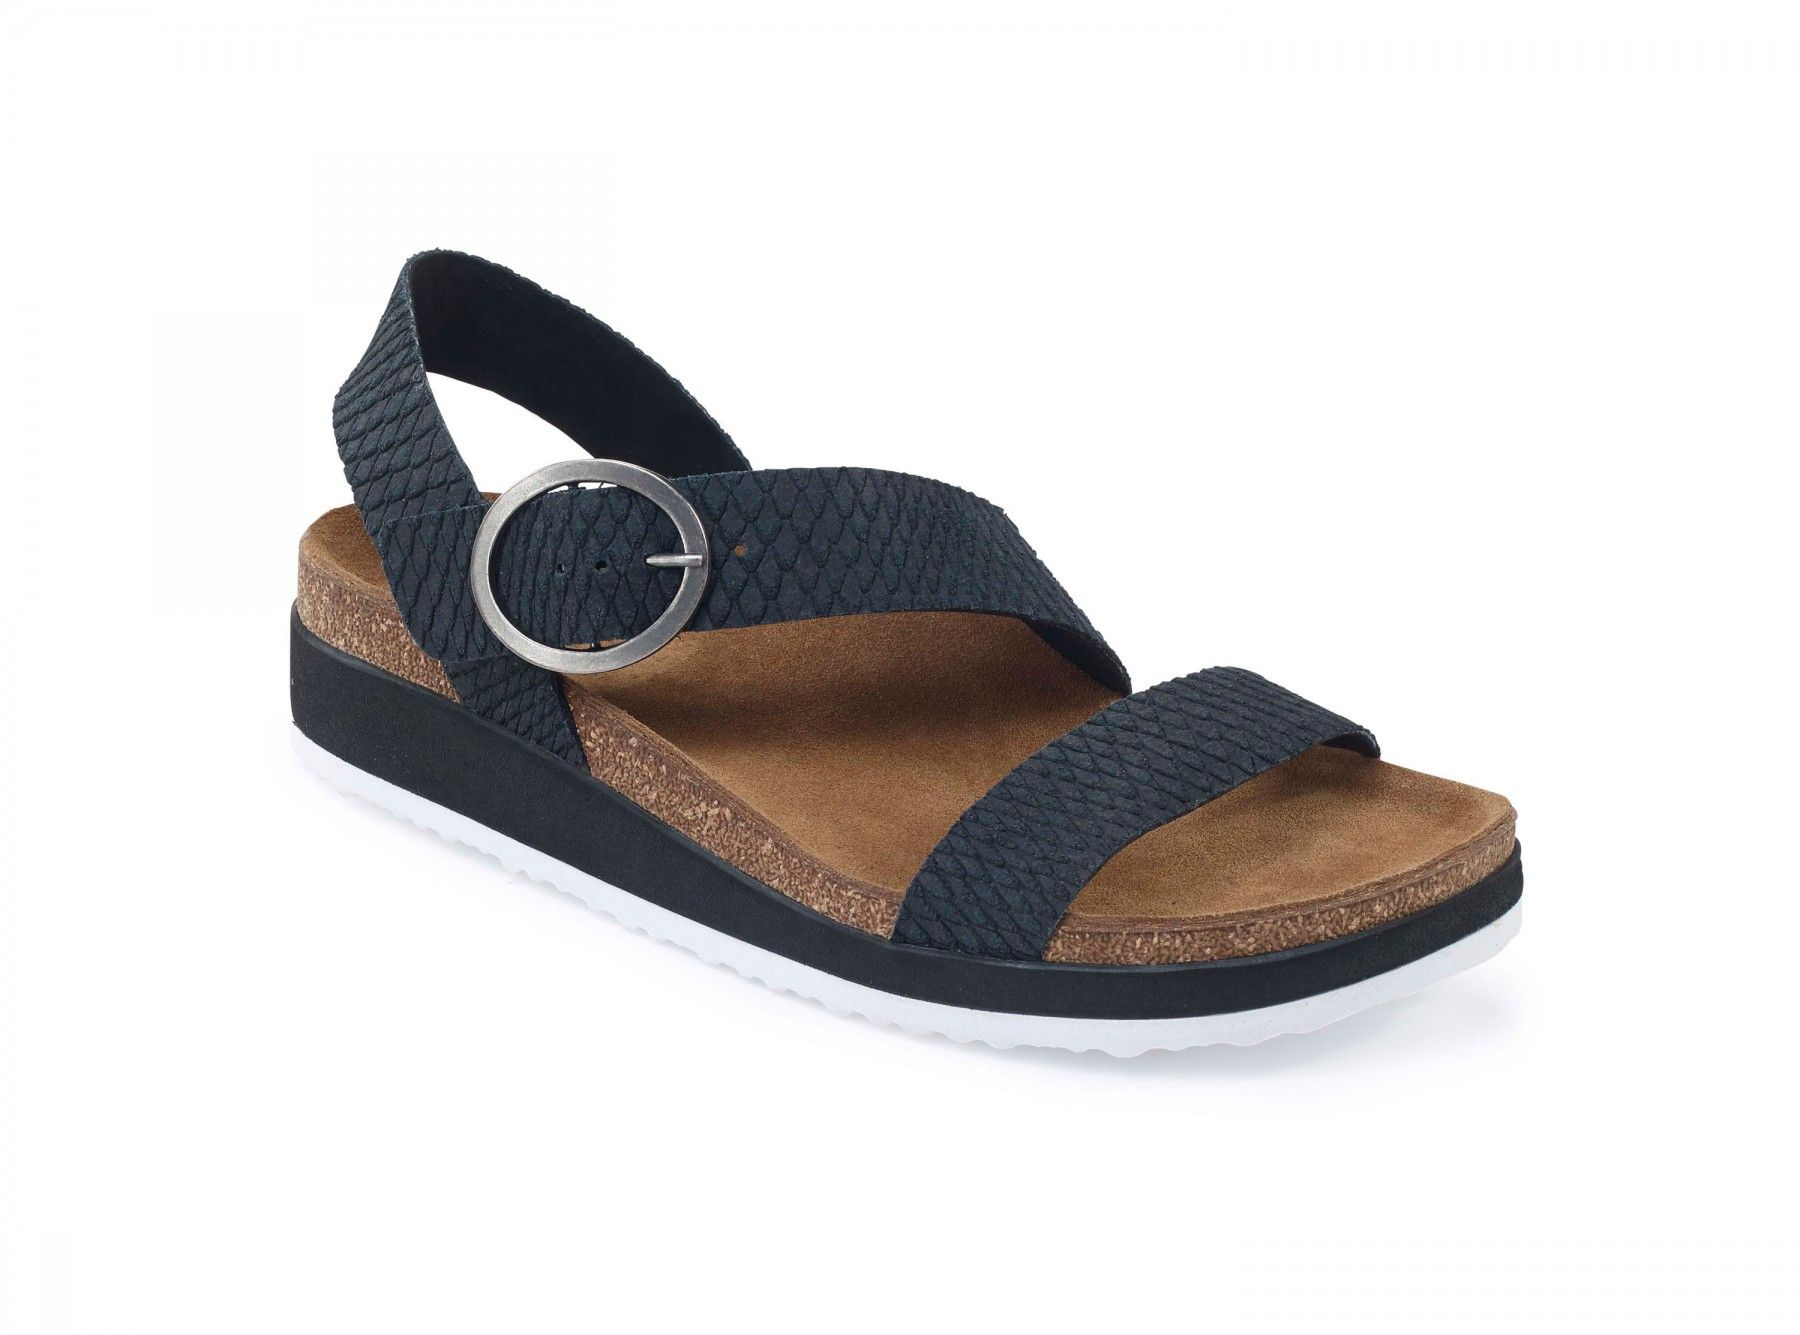 0d8d94b48614d8 Aetrex Womens - Adrianna Black - Comfortable Suede Sandal - Aetrex  Worldwide Orthotic Comfort Shoes